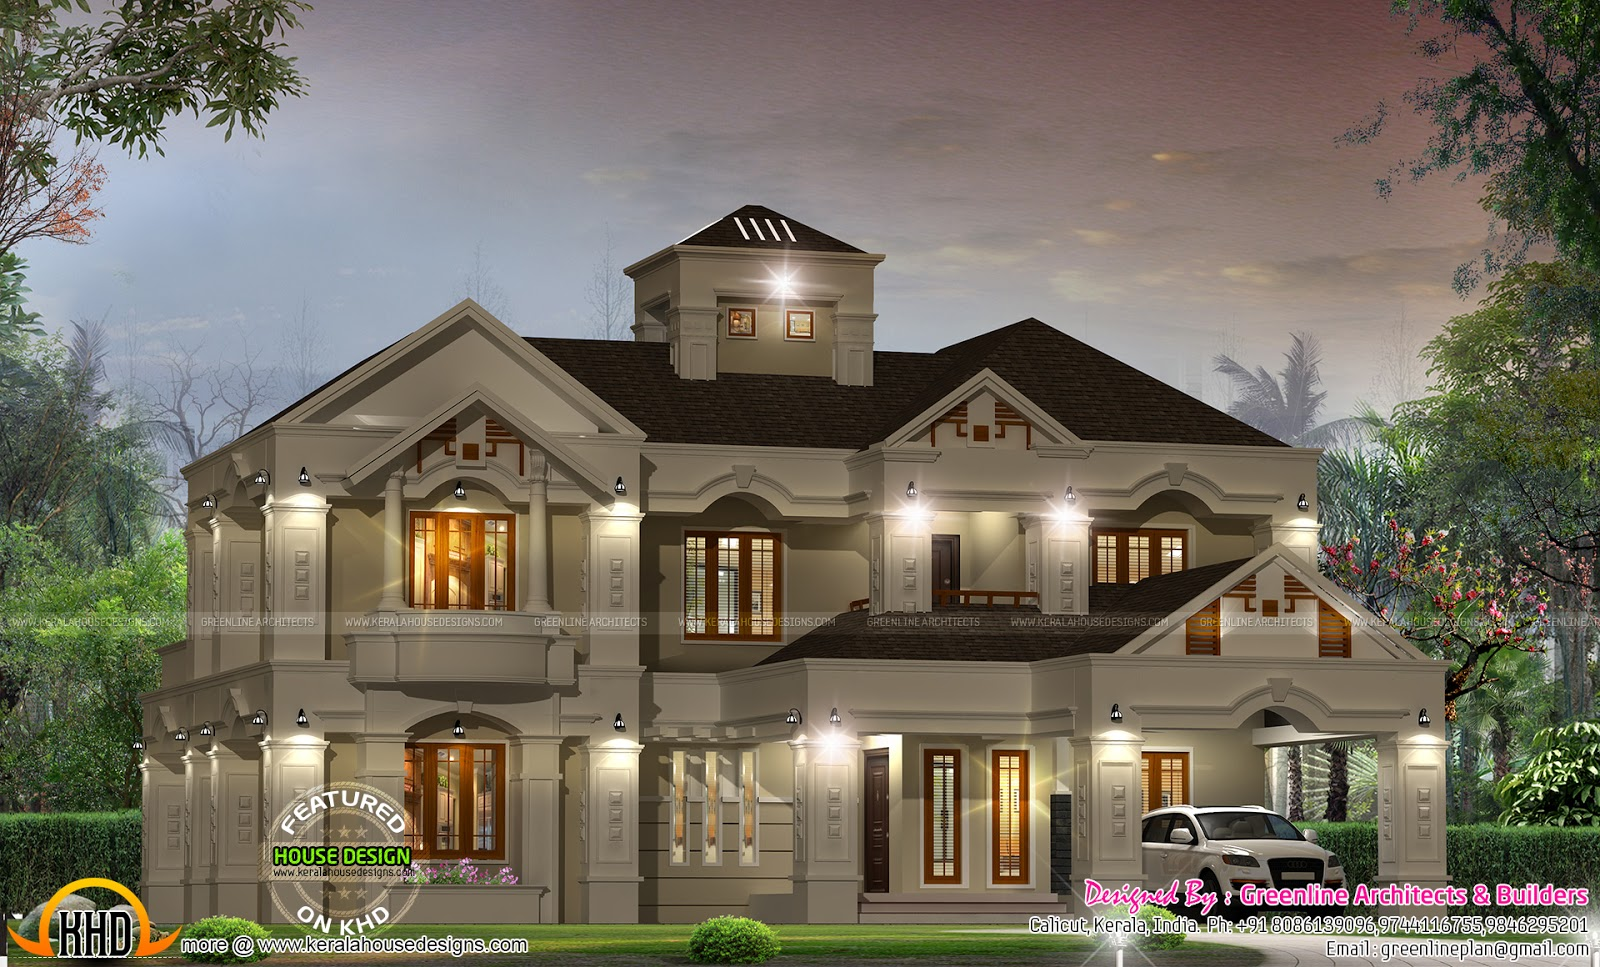 Luxury villa design in kerala kerala home design and for Luxurious home plans